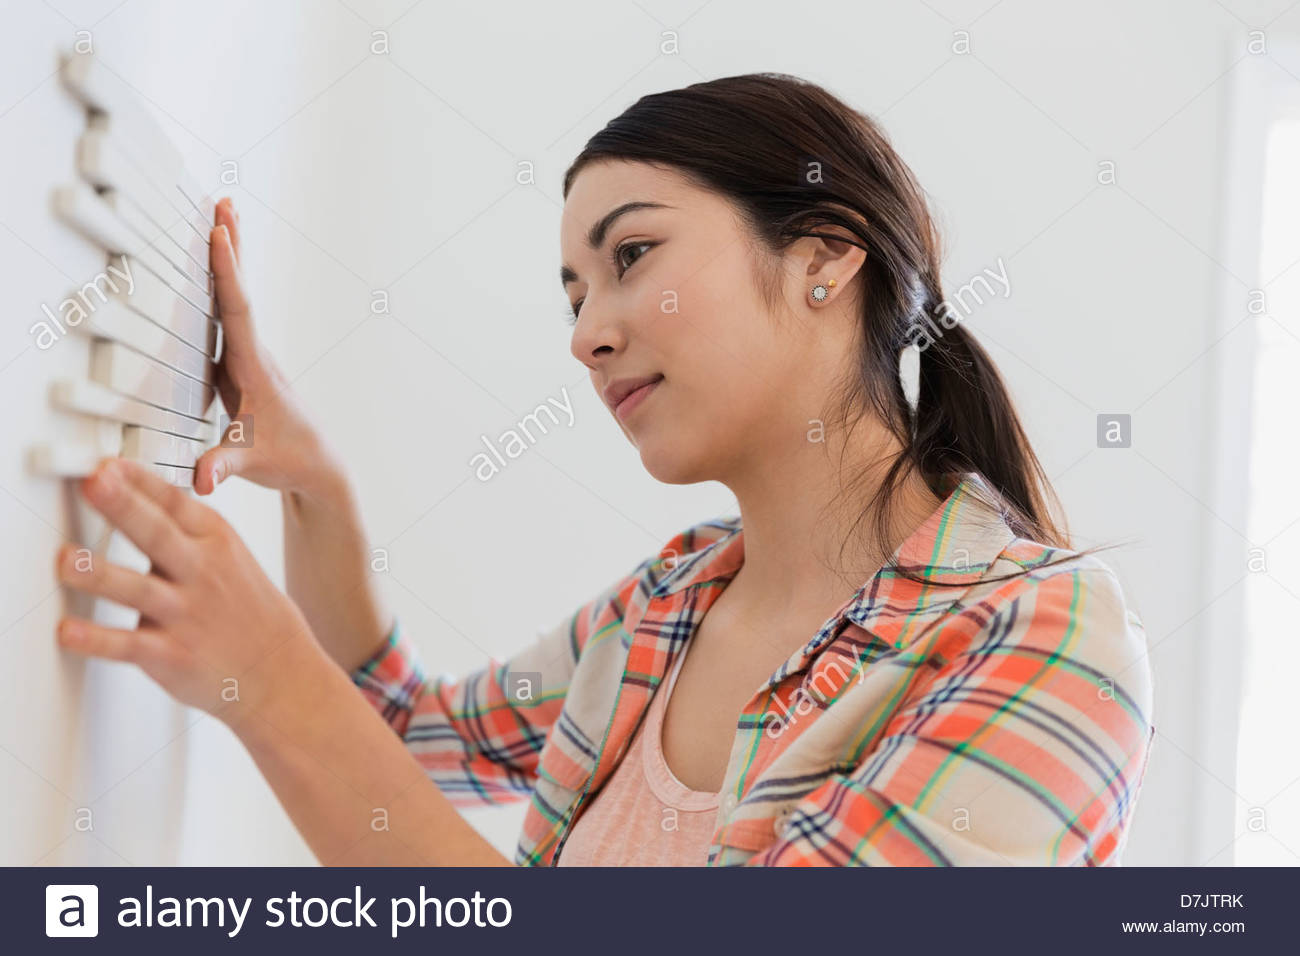 Young woman decorating wall with tiles at home - Stock Image